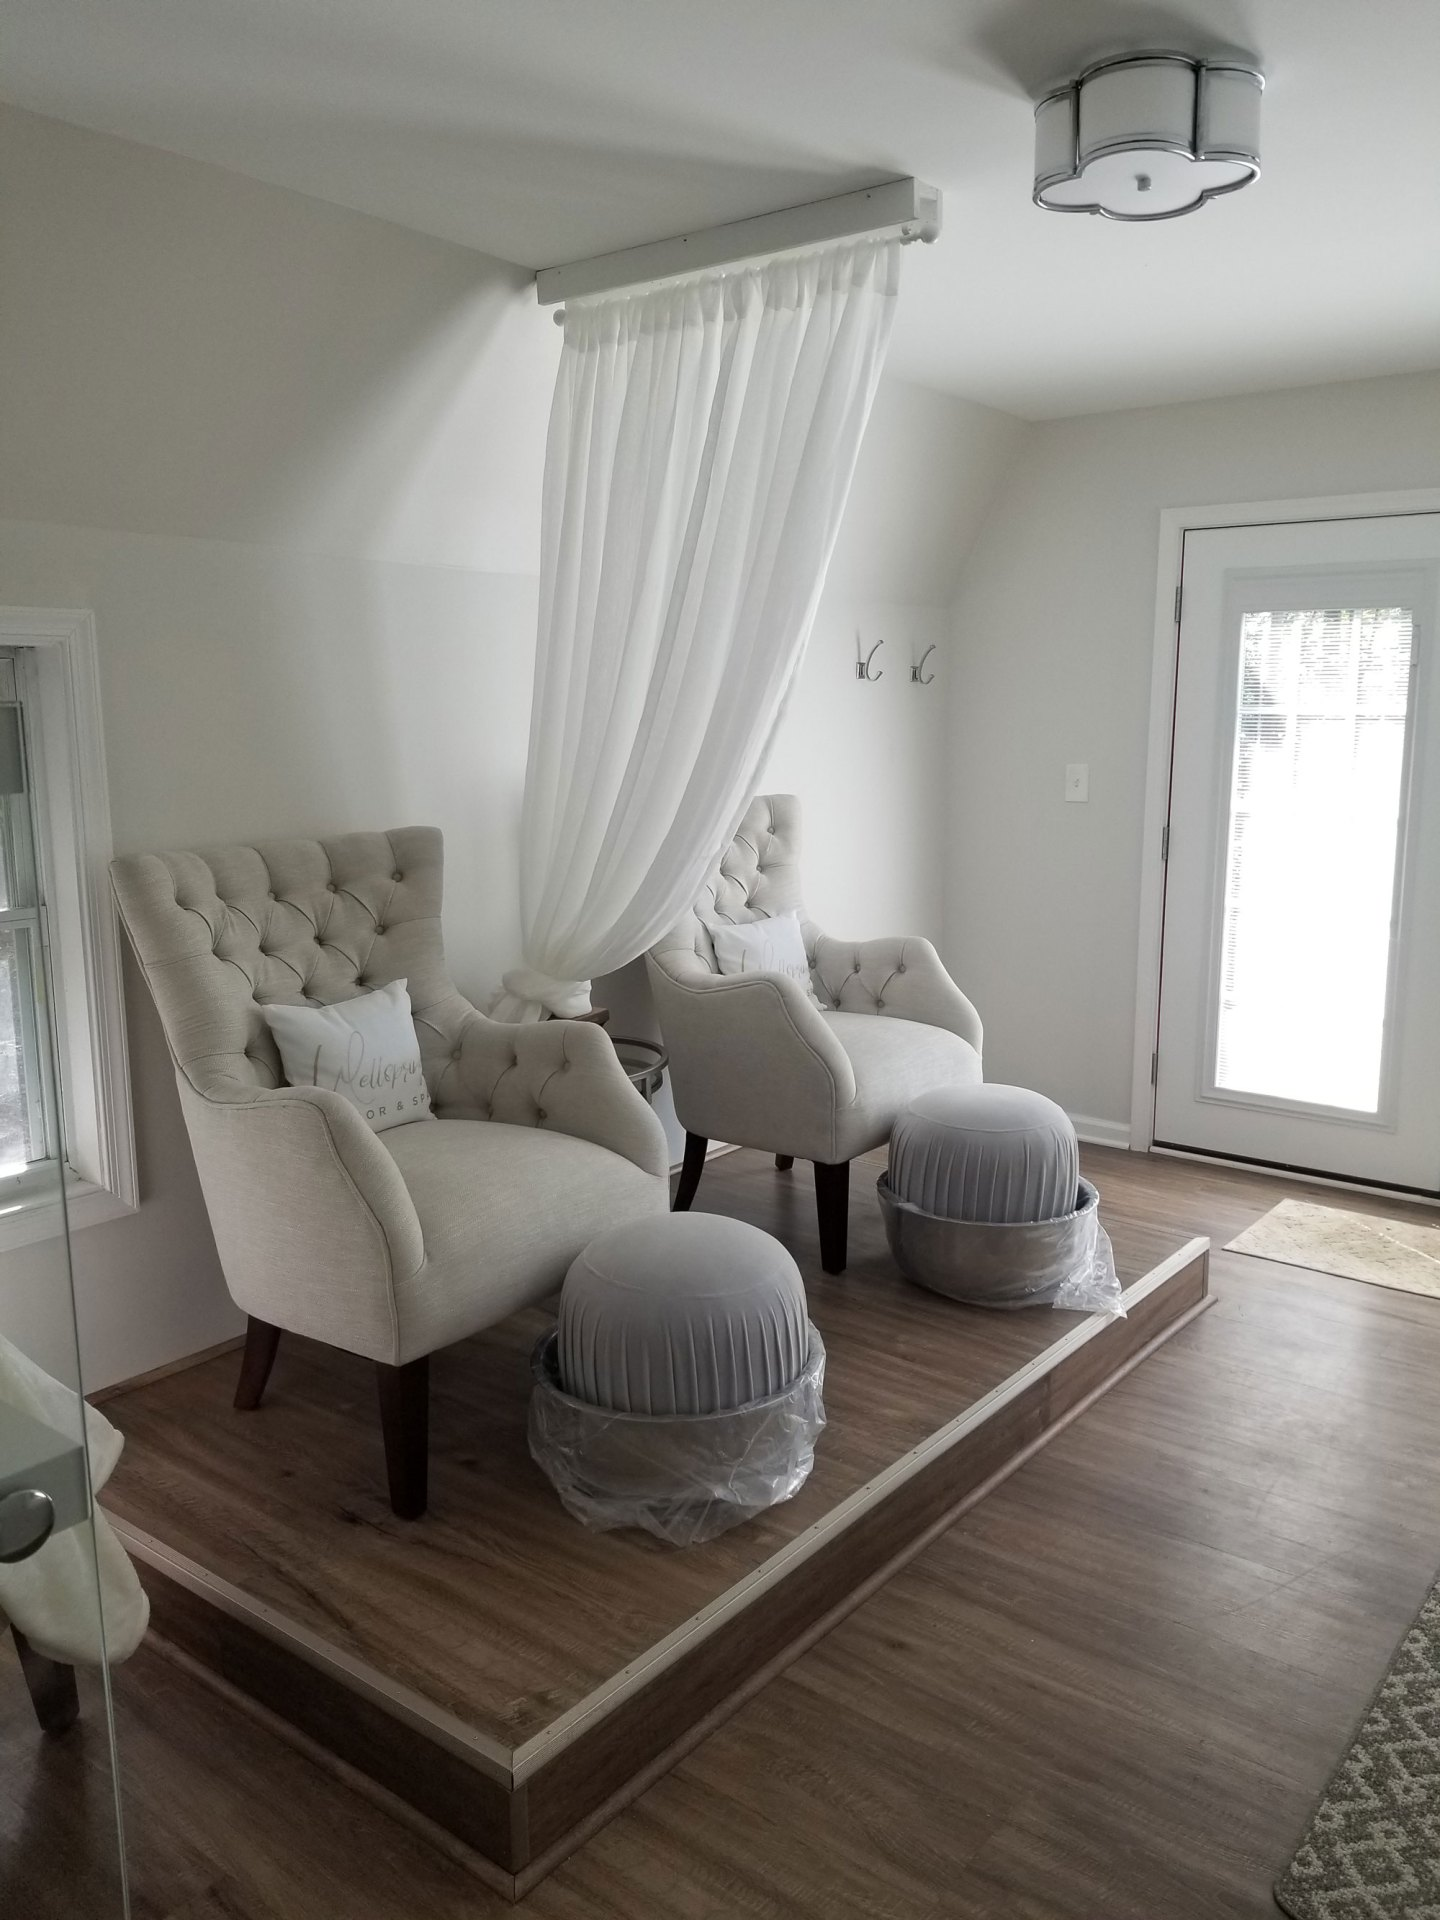 Spa Black-Owned Bed & Breakfast in Maryland: How to Host an Event in an Intimate Venue